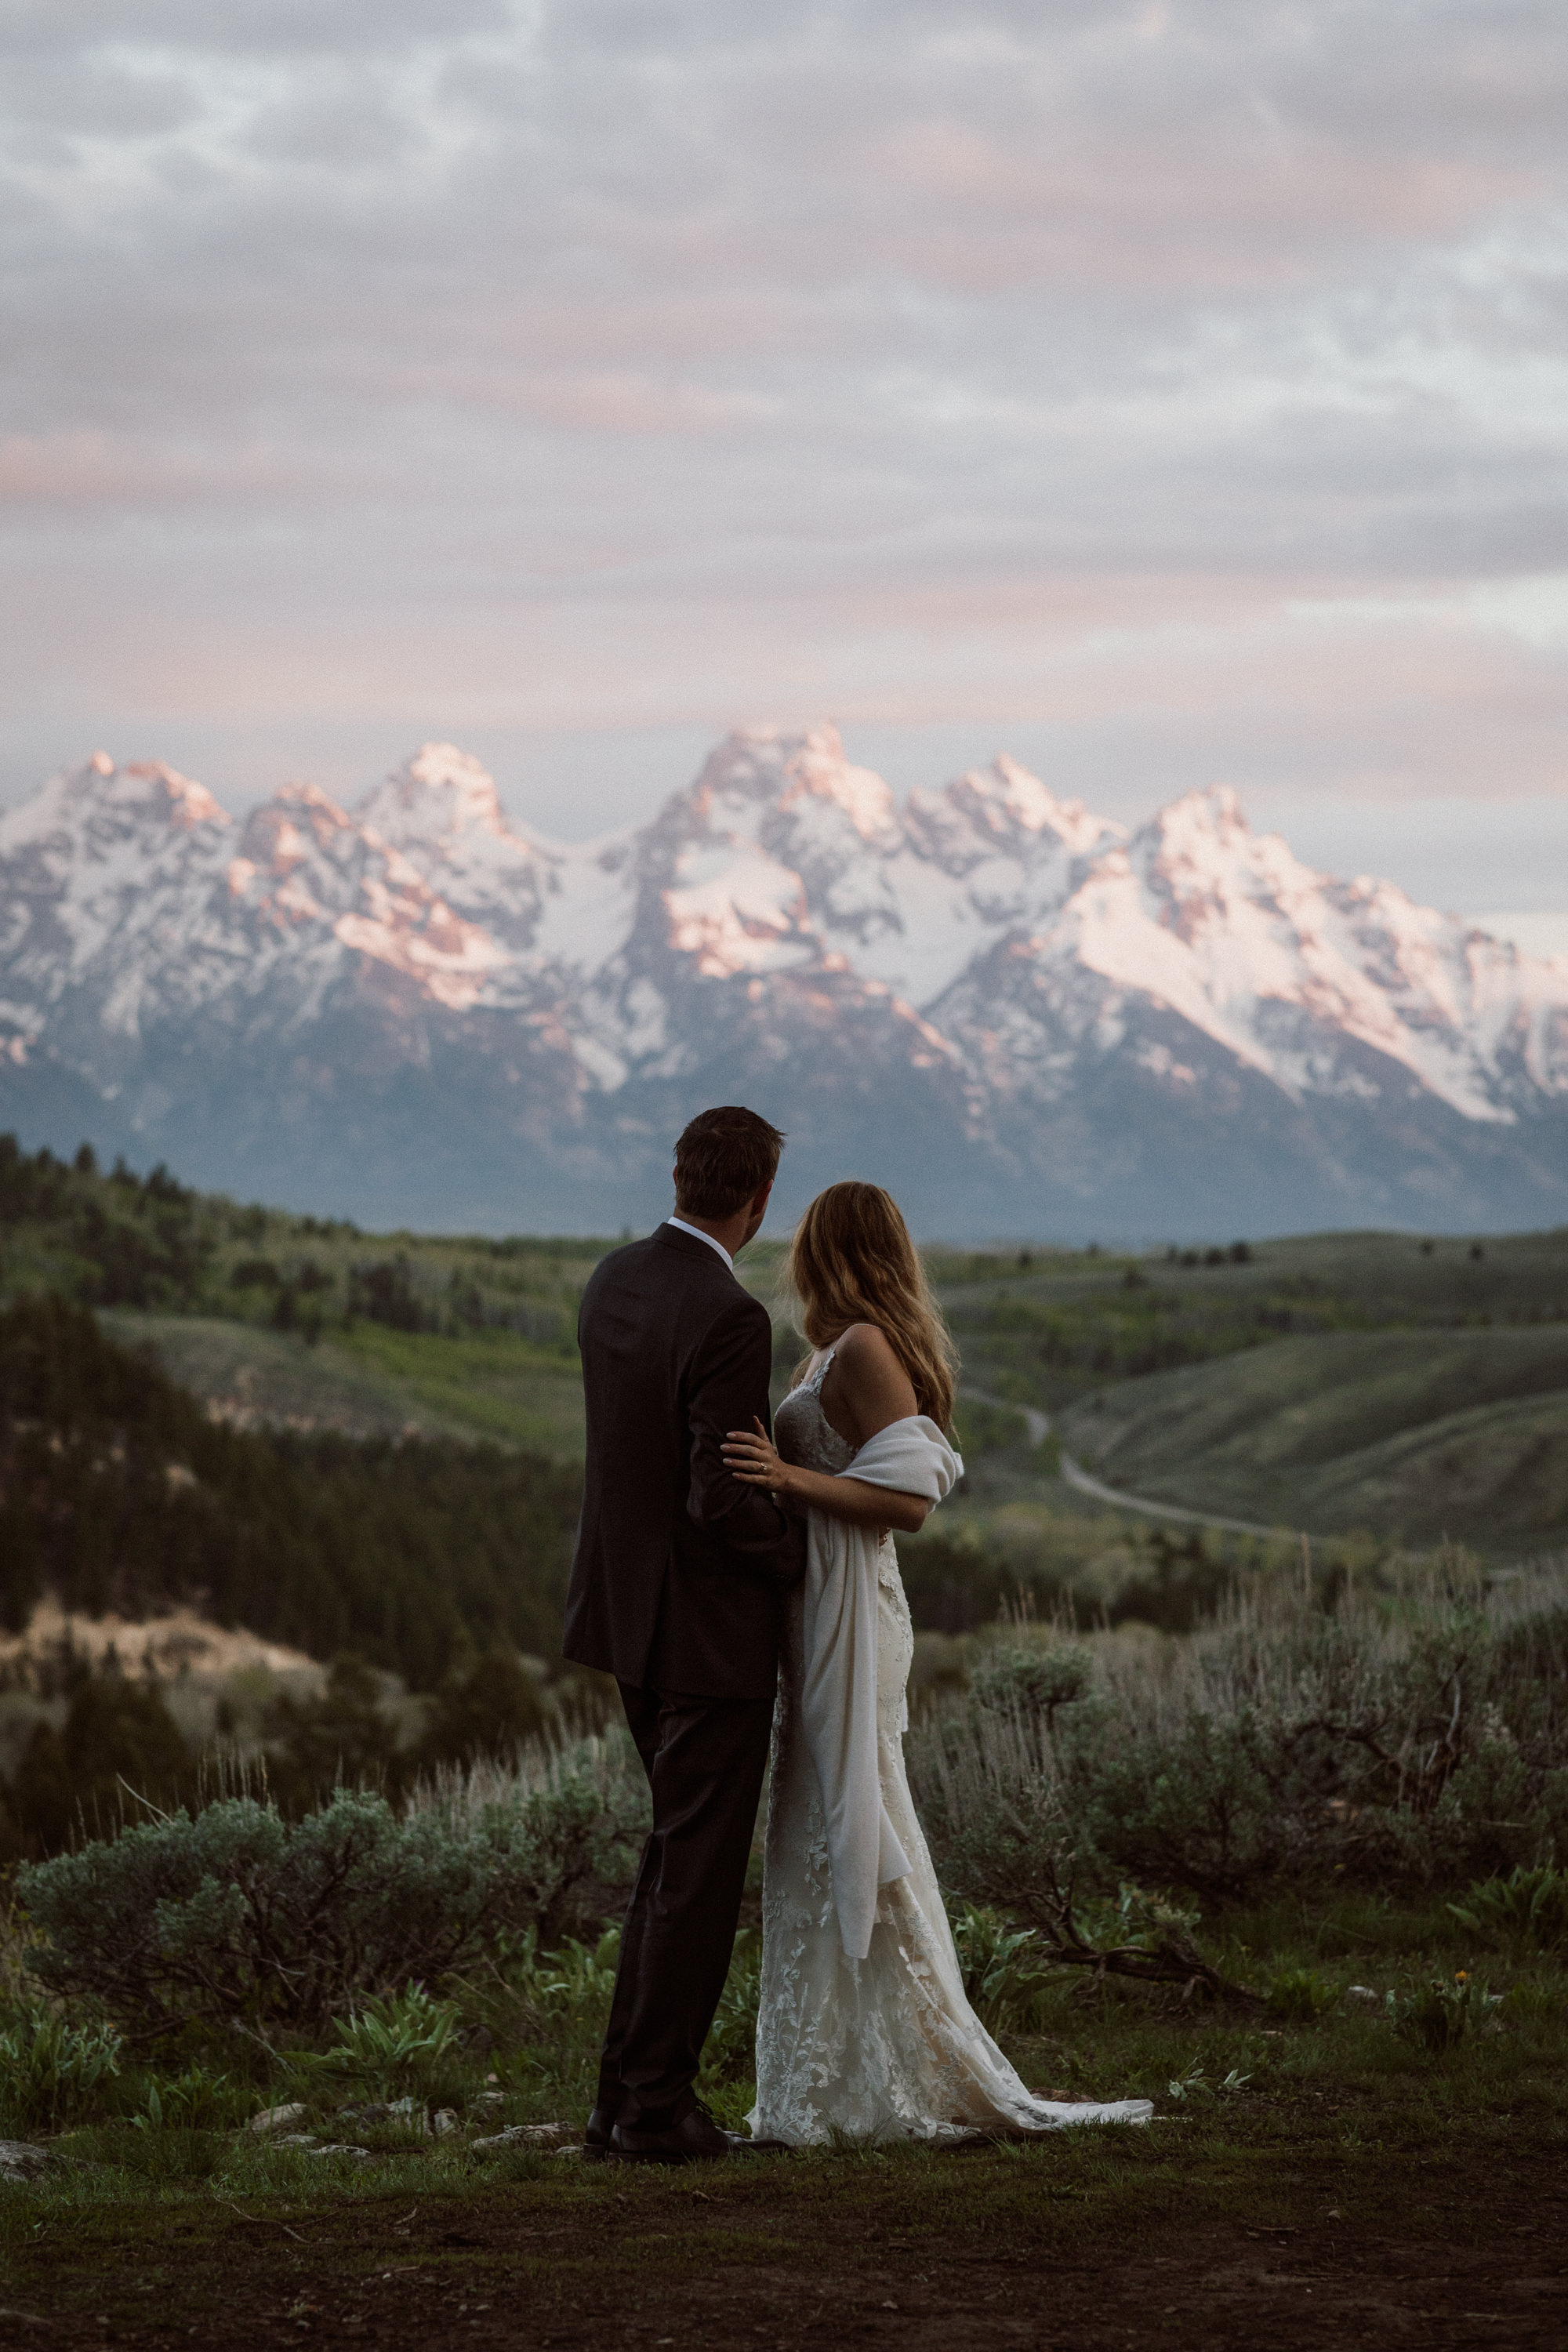 grand-teton-national-park-wedding-3.jpg